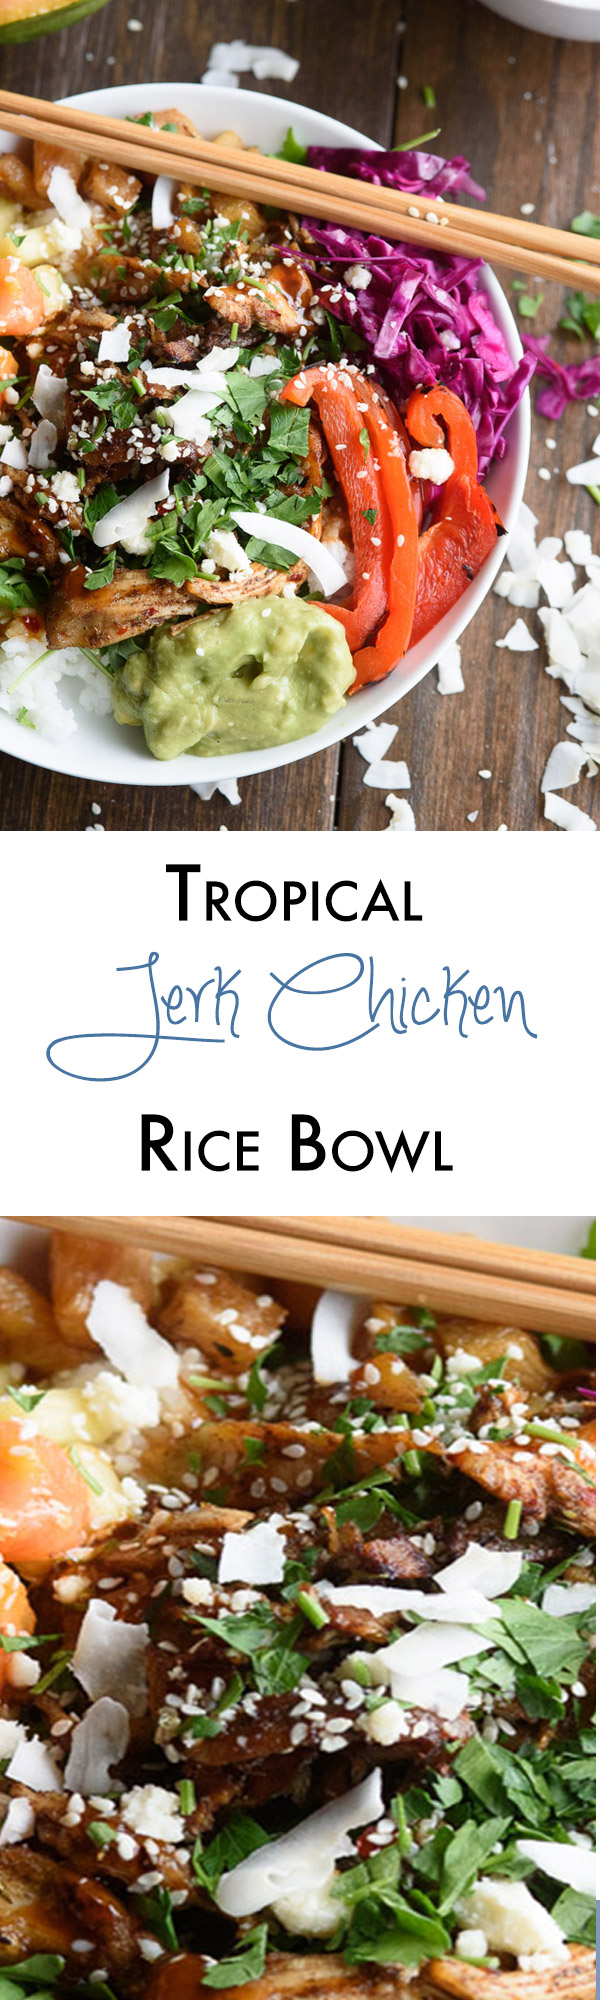 Looking for a perfect 30 minute dinner? This tropical jerk chicken rice bowl is packed with fresh flavors and always a family pleaser!